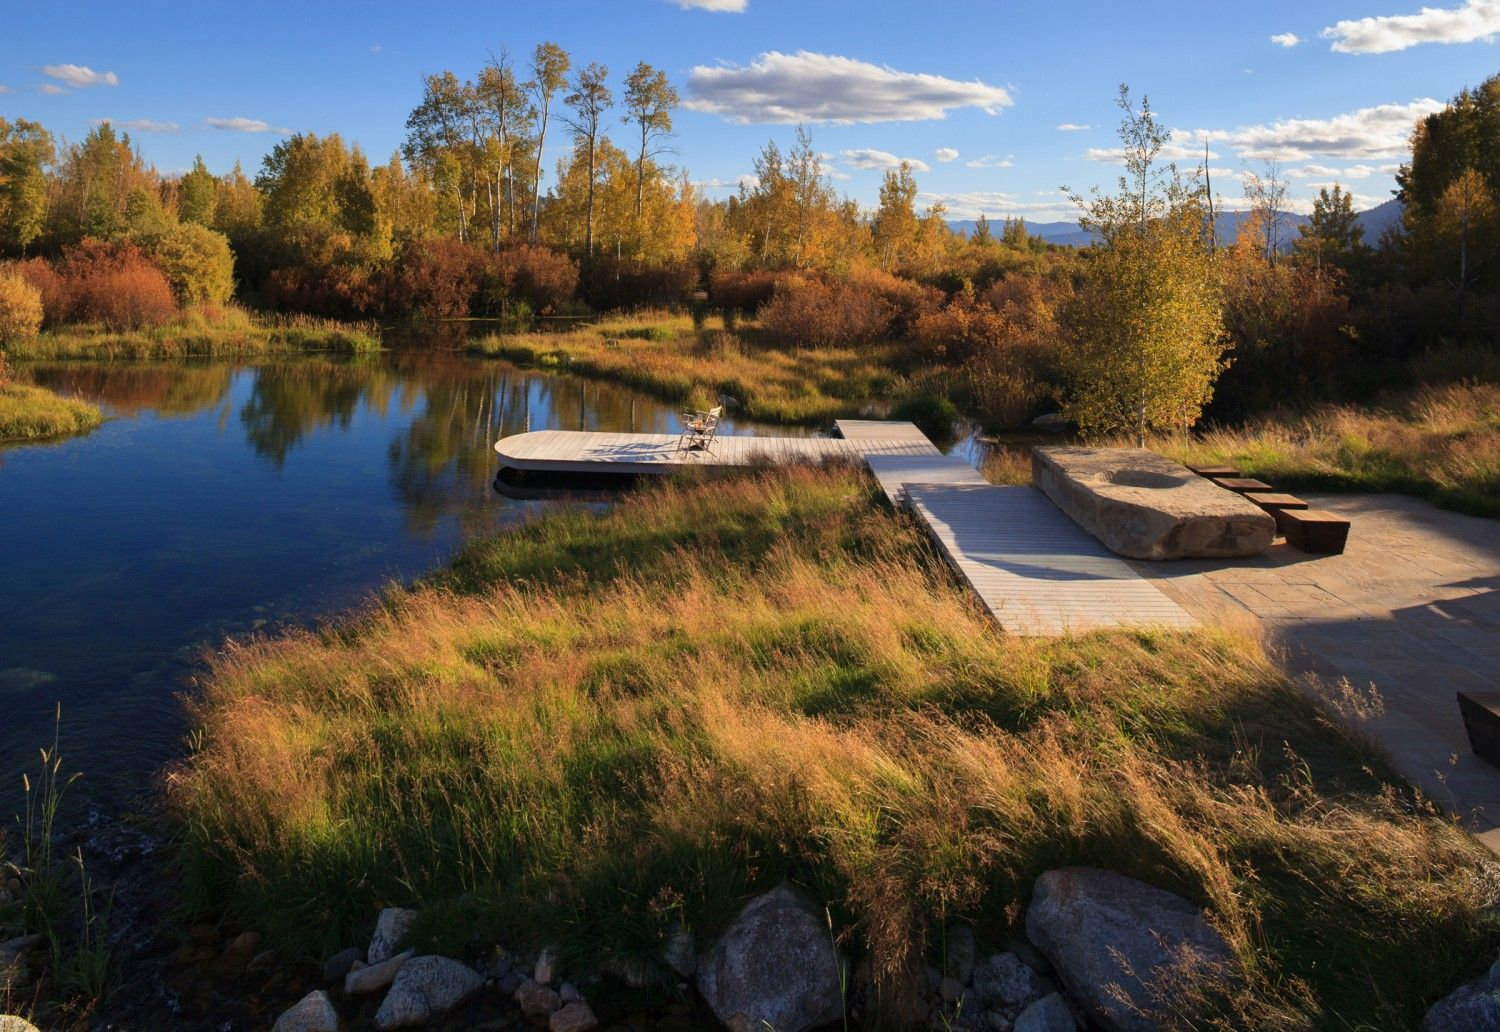 Literal ideal wetlands landing area pond swamp meadowy for Area landscape architects